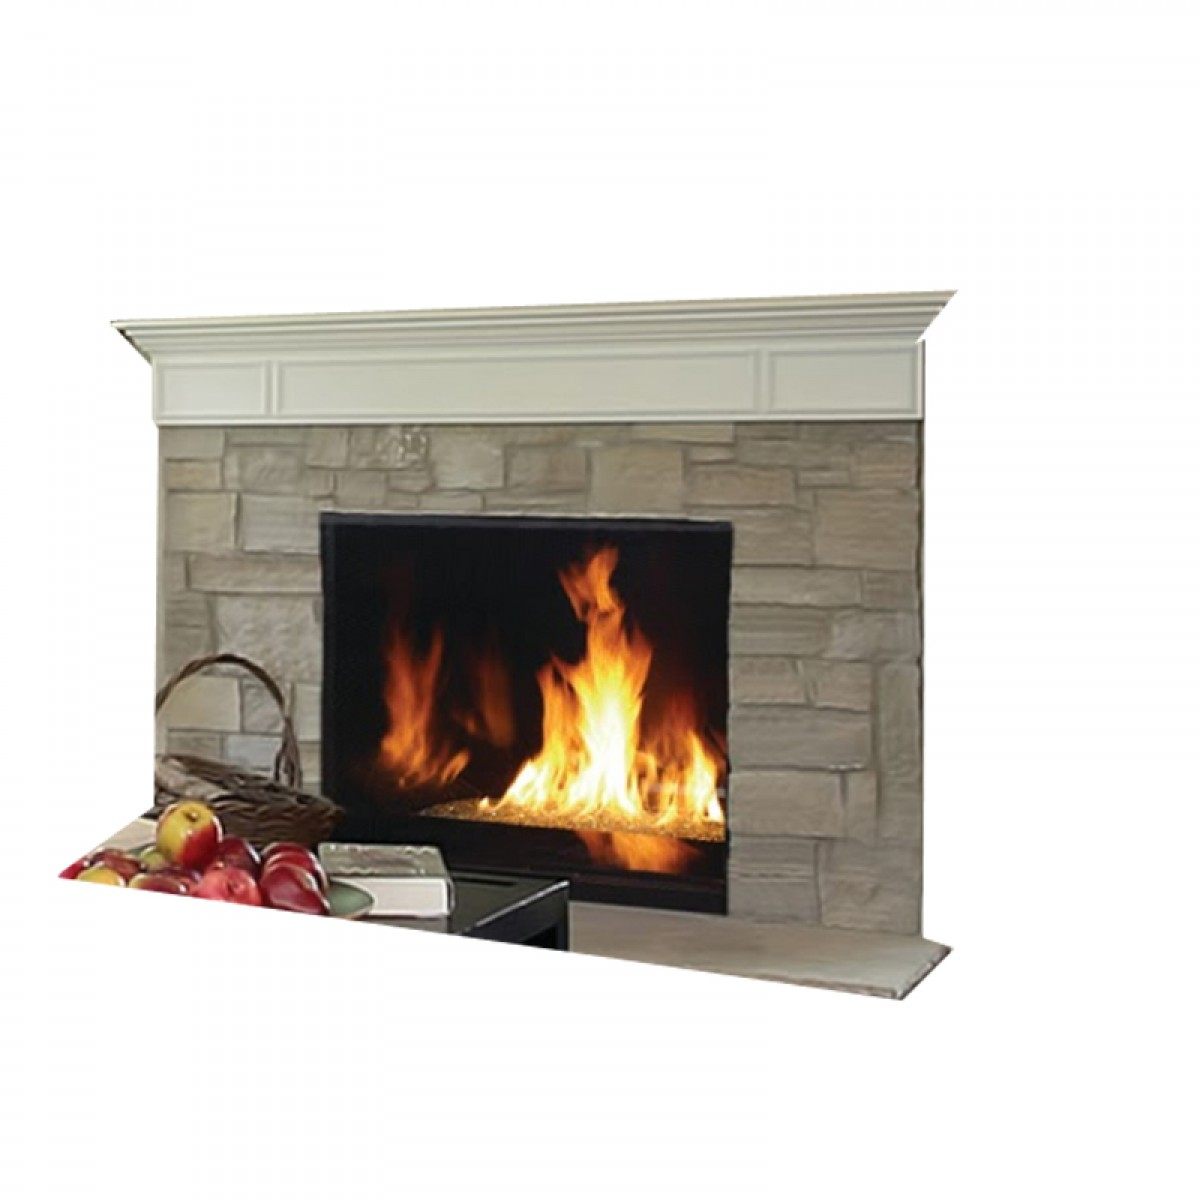 Fireplace Vent Ihp Superior Drc6300 Direct Vent Louverless Gas Fireplace